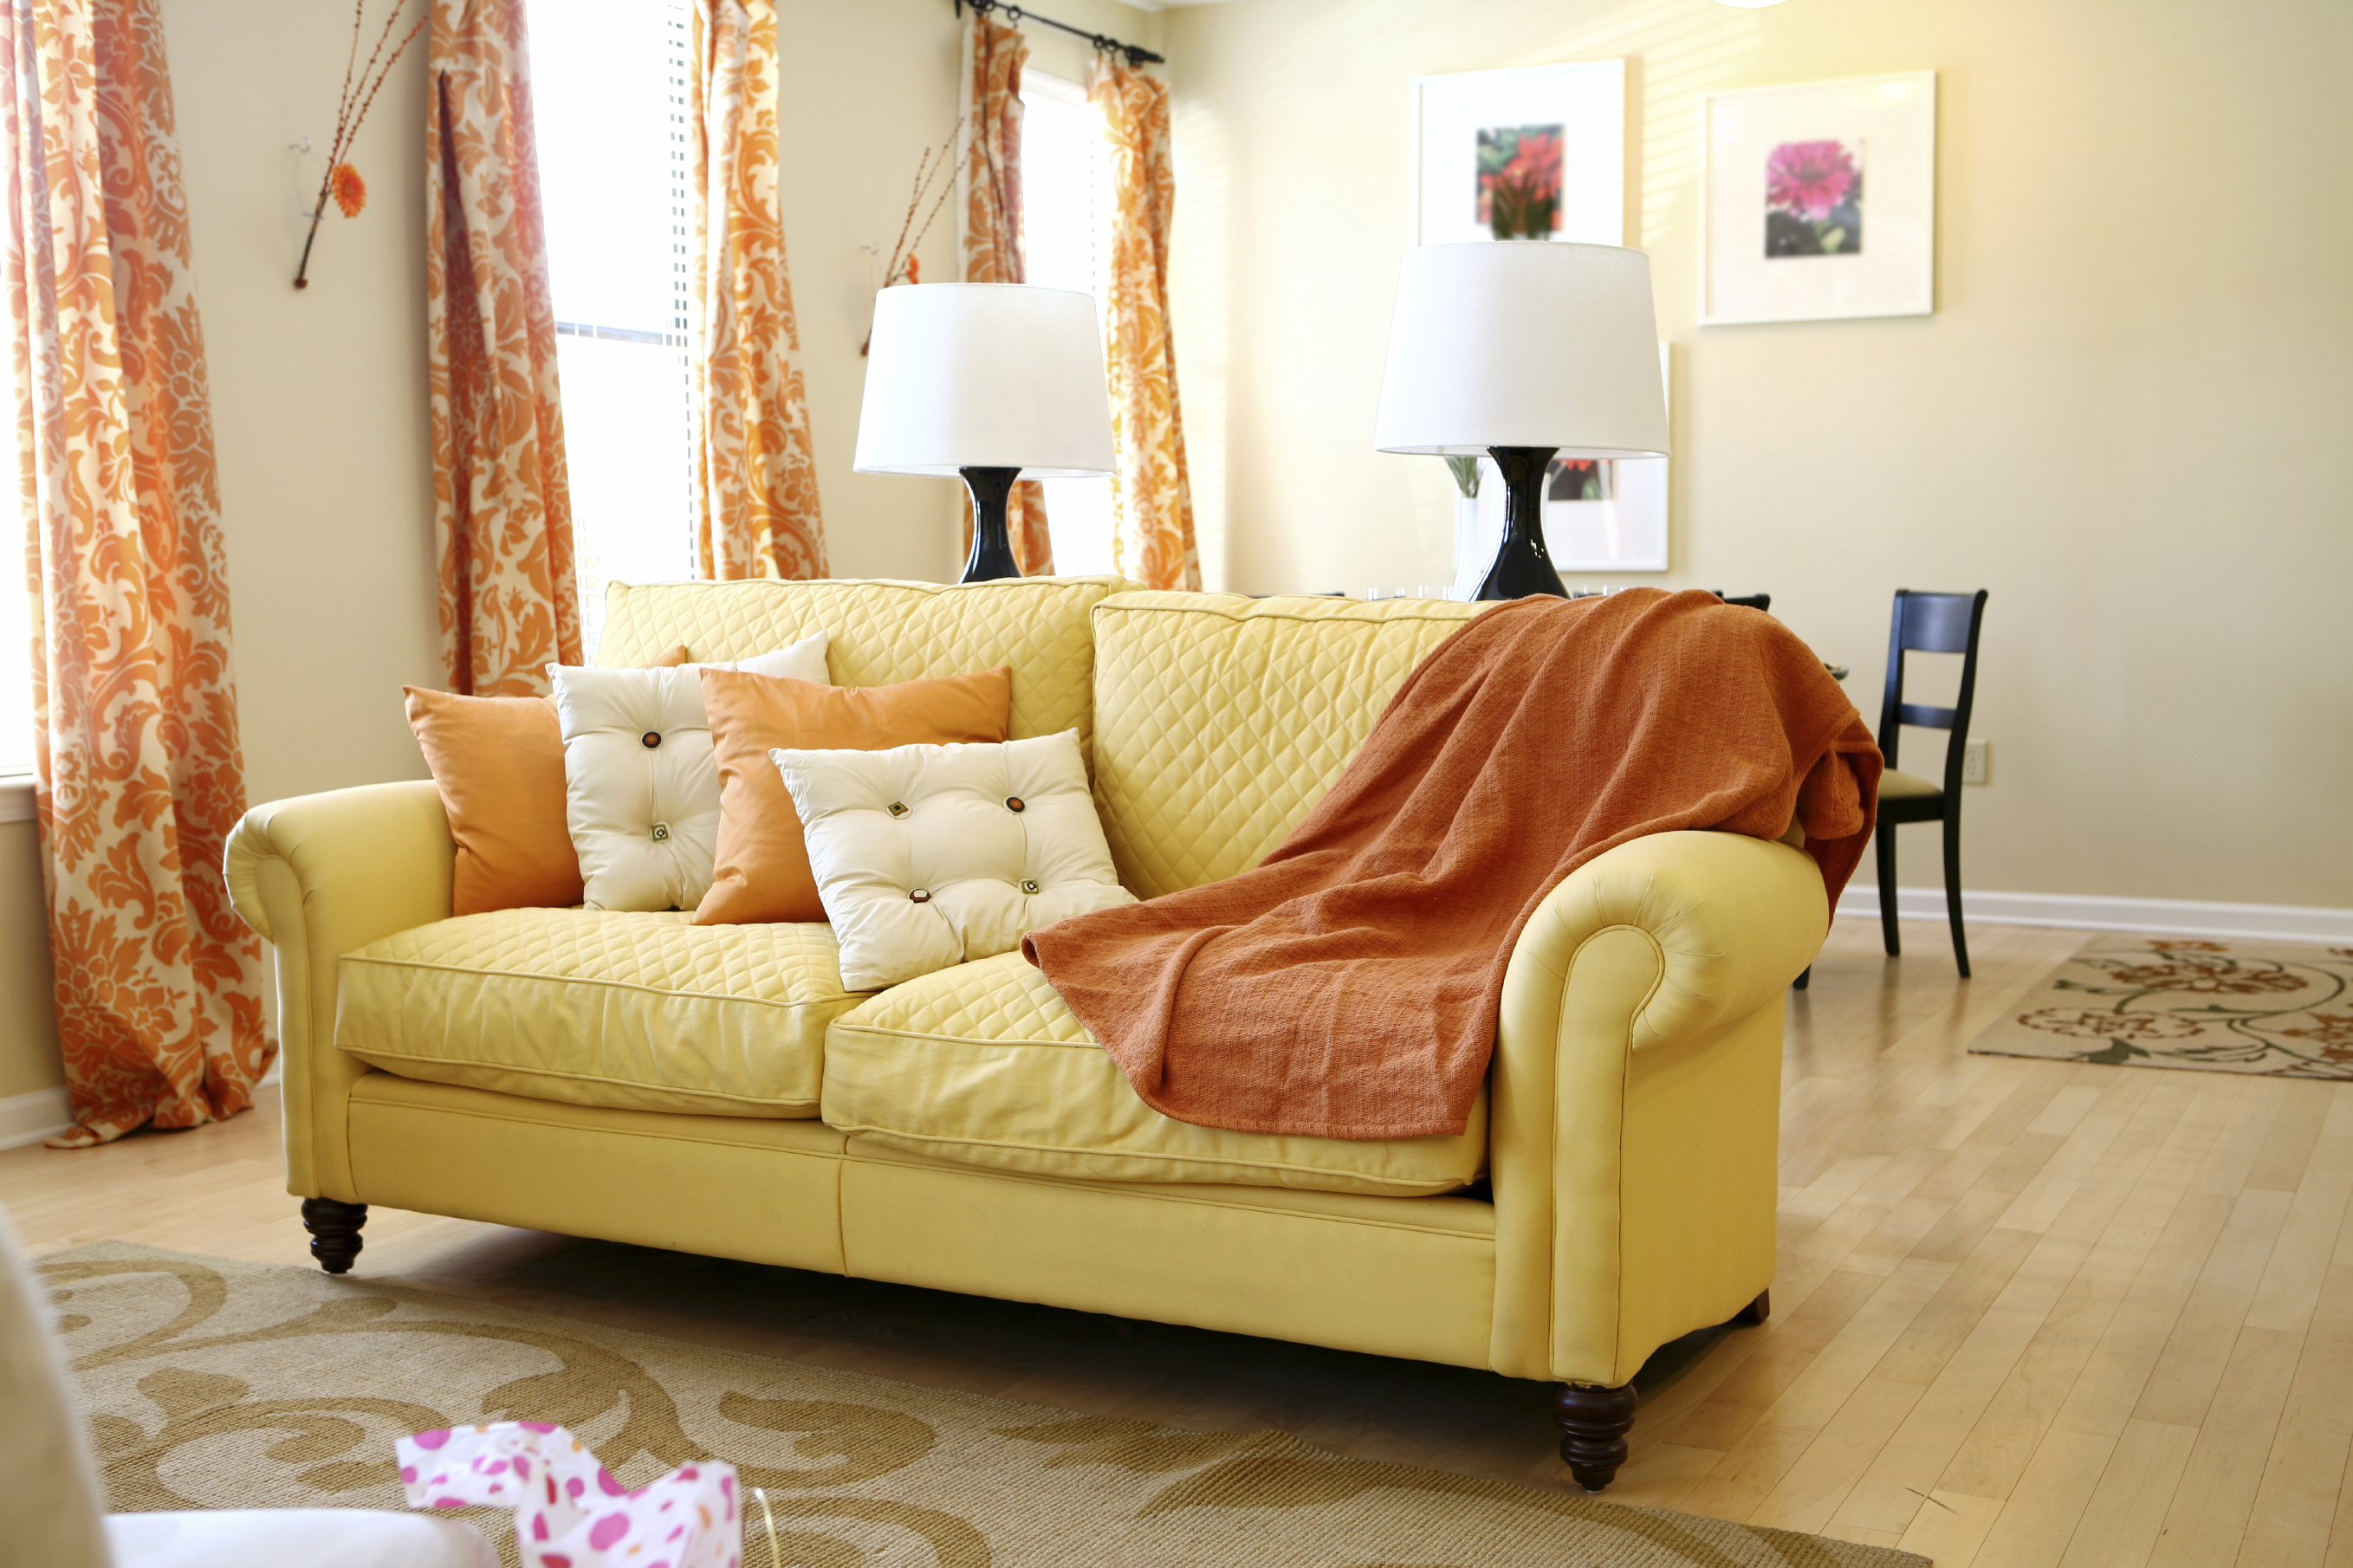 3 REASONS UPHOLSTERY CLEANING IS IMPORTANT - Chem-Dry of Stratford